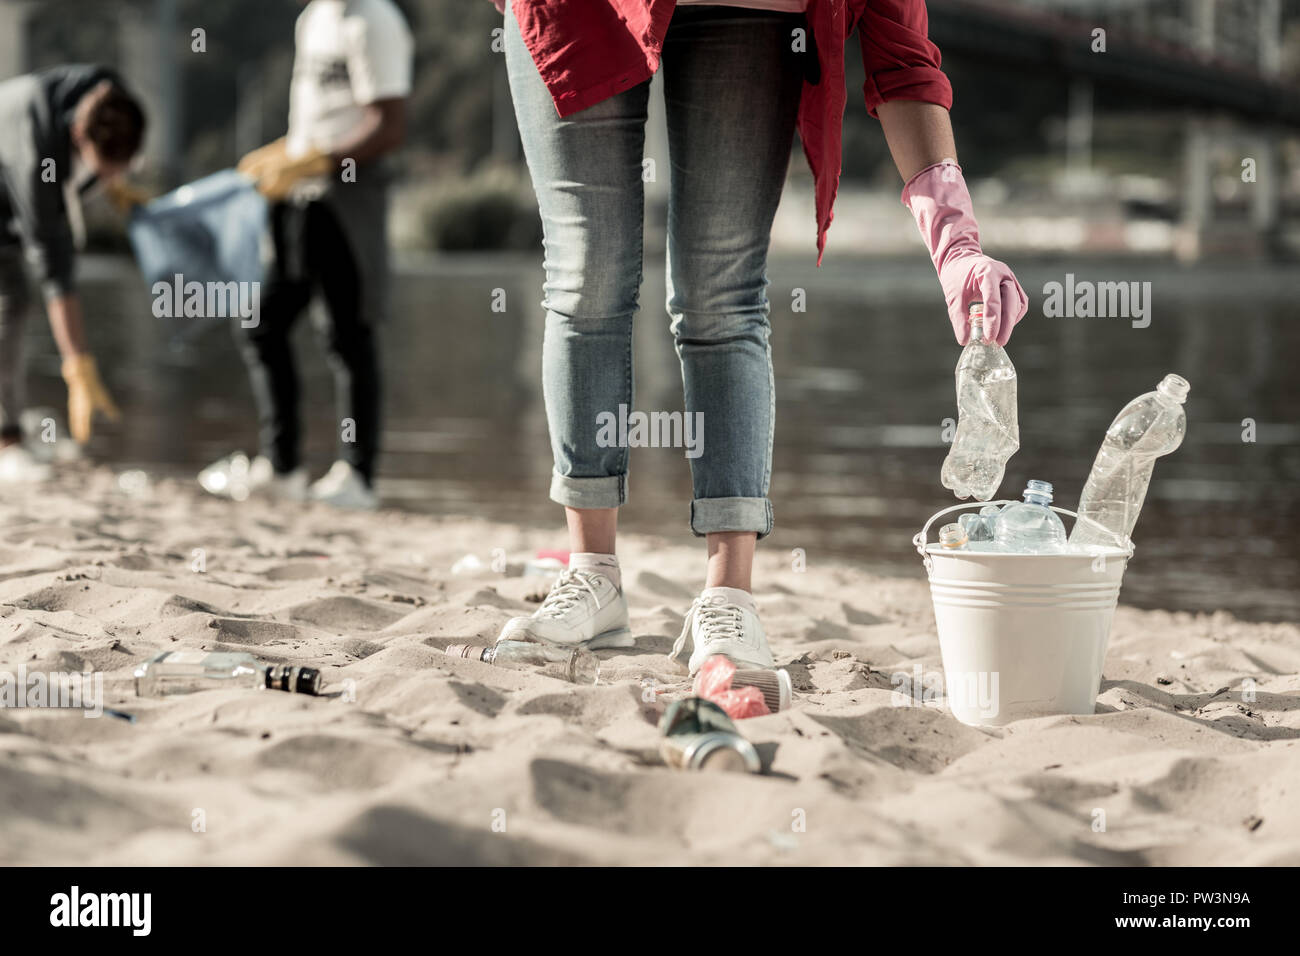 Active student volunteering while cleaning up trash left behind on the beach - Stock Image